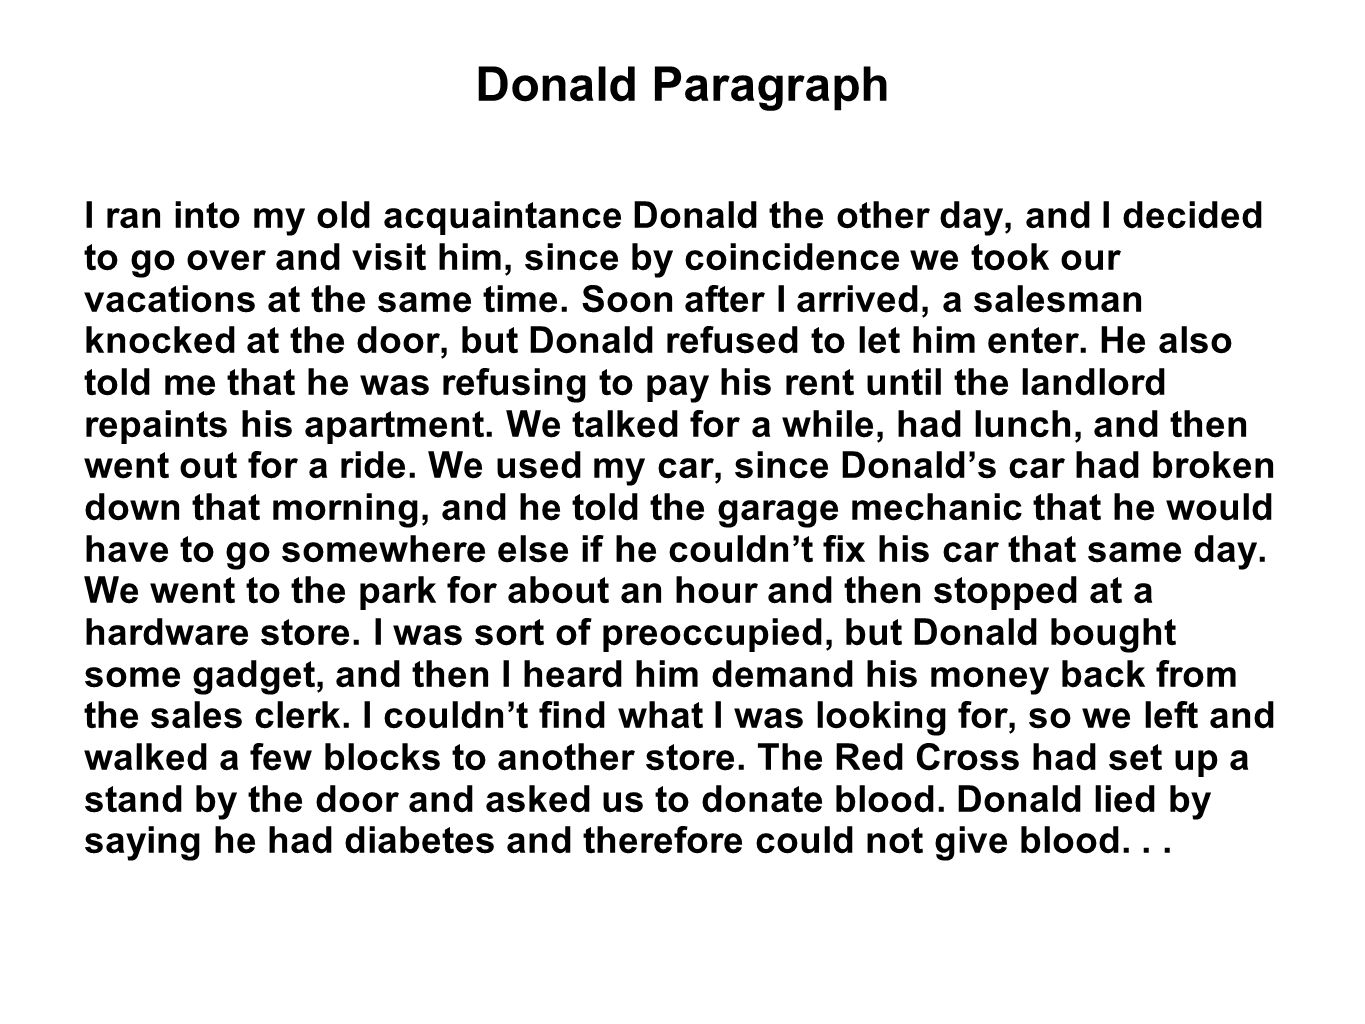 Donald Paragraph I ran into my old acquaintance Donald the other day, and I decided to go over and visit him, since by coincidence we took our vacations at the same time.